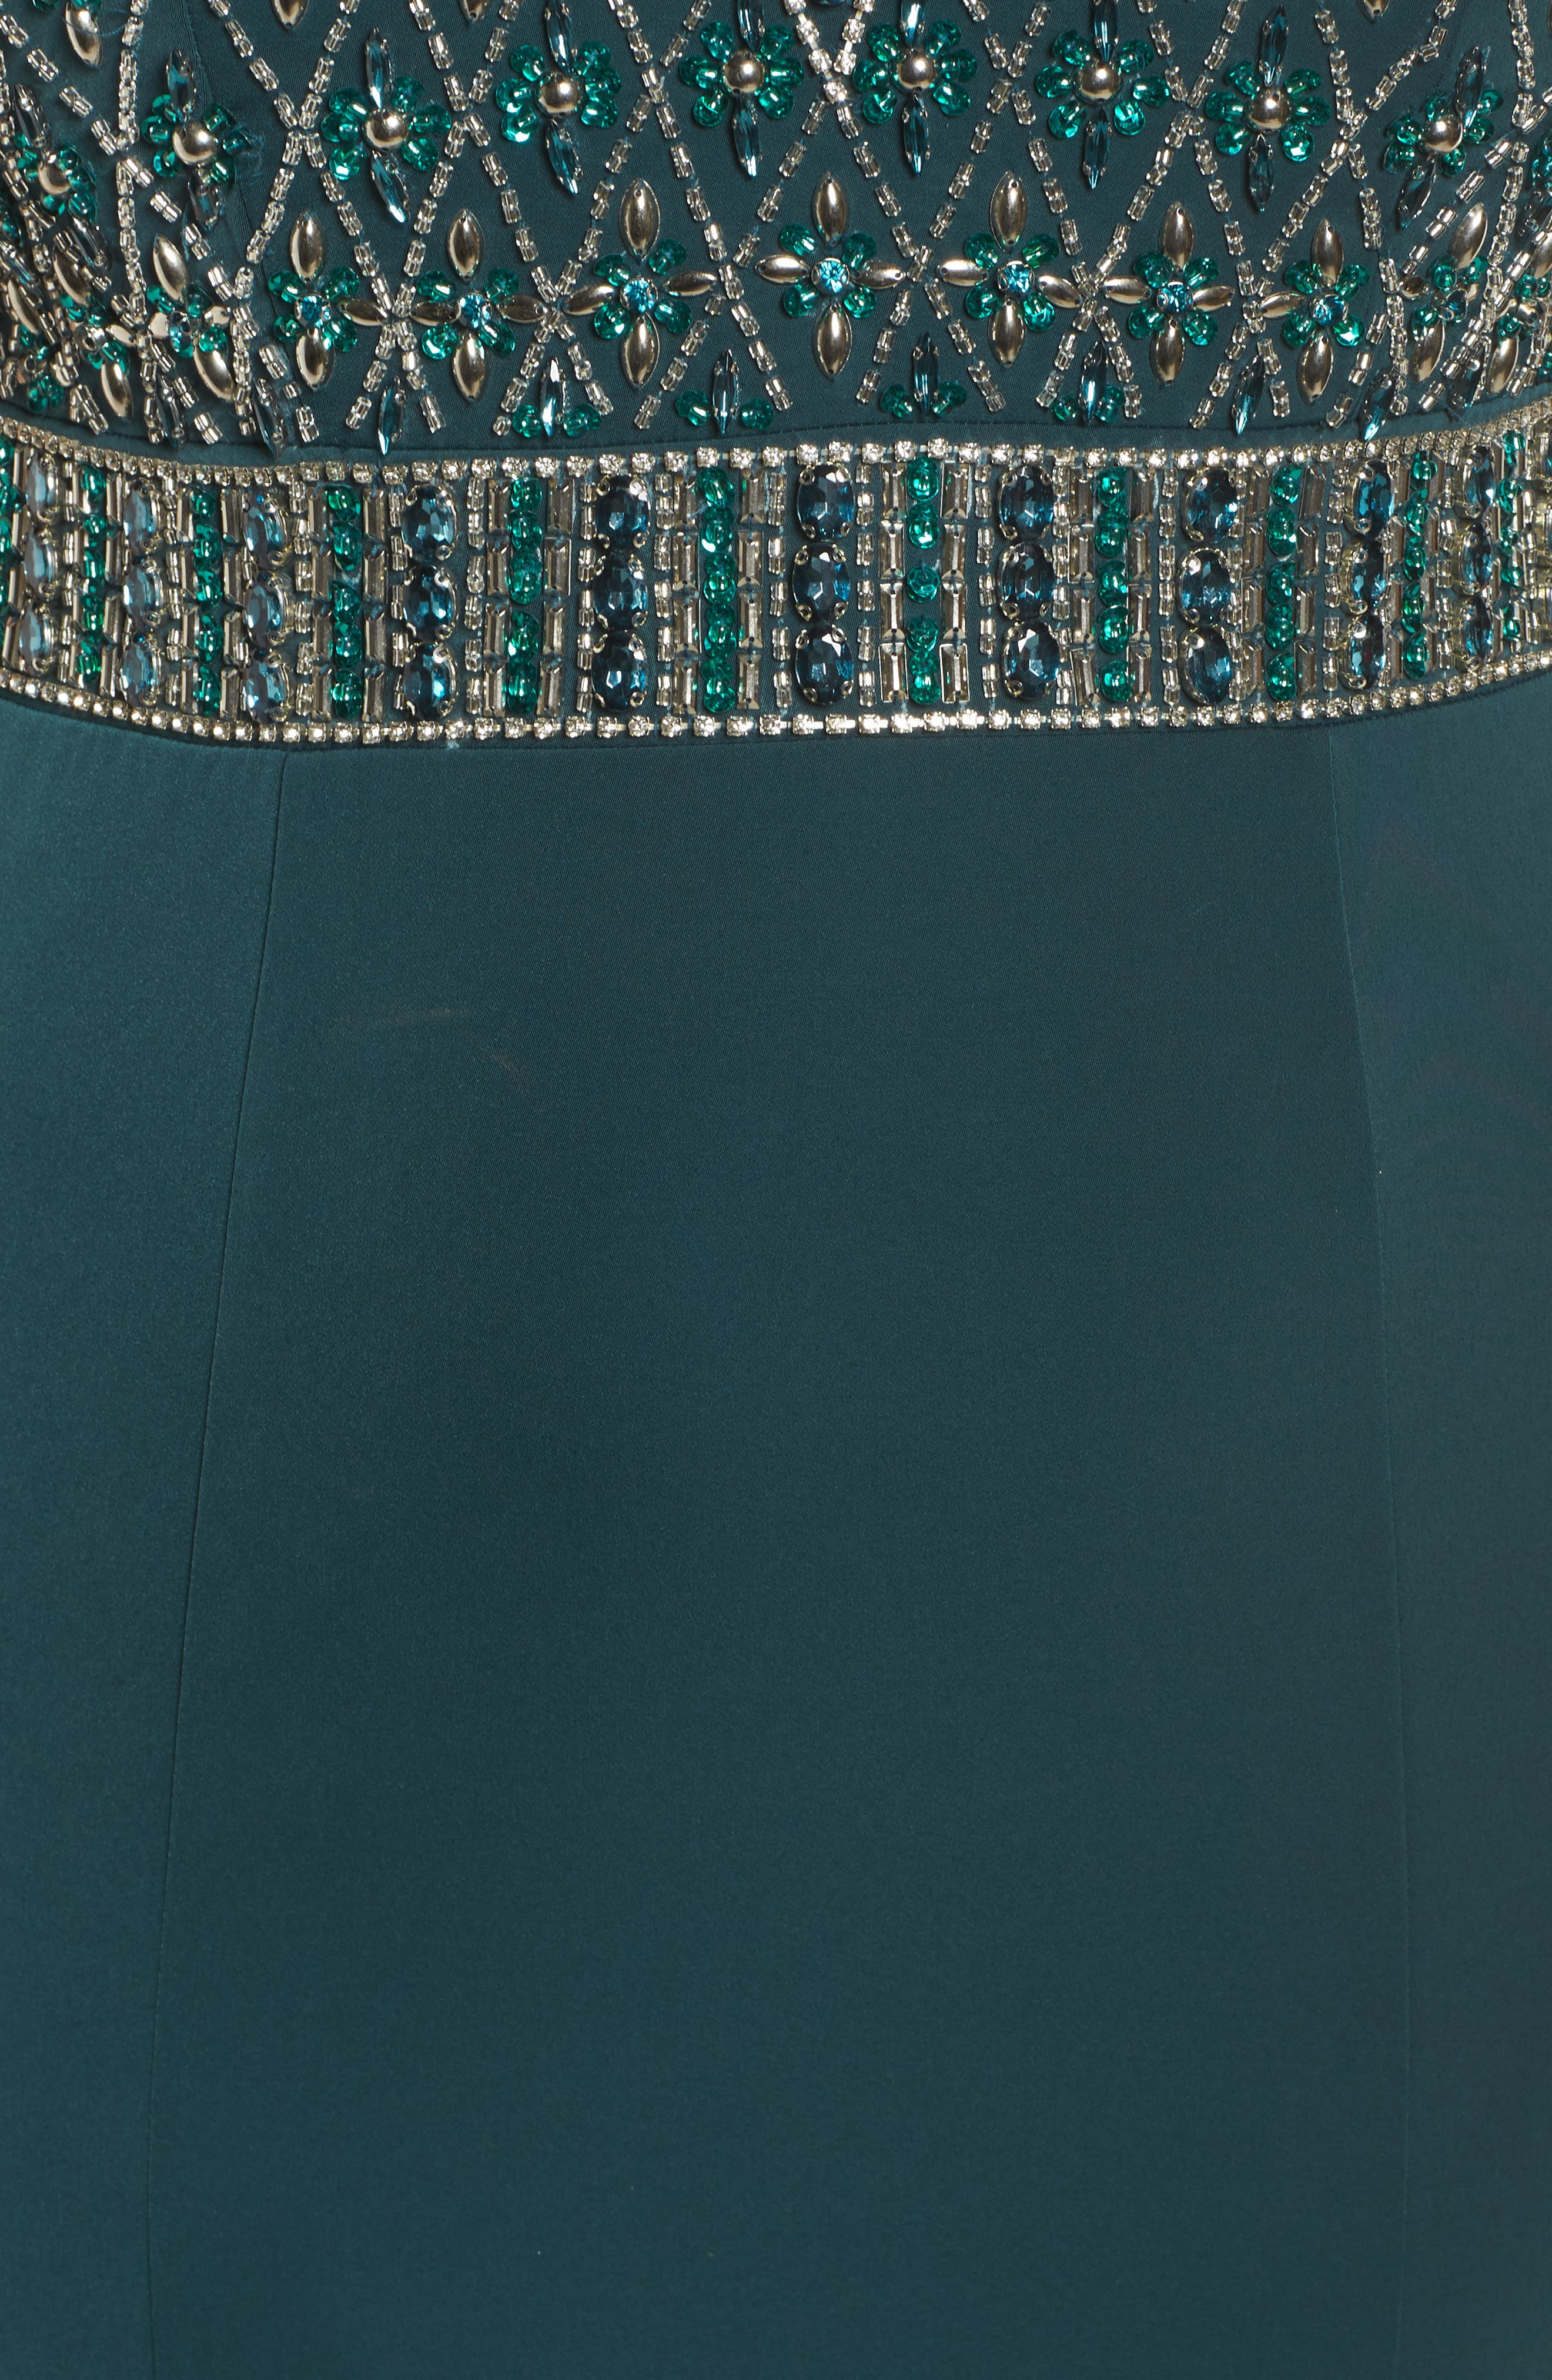 Crystal Embellished Ballgown,                             Alternate thumbnail 5, color,                             DEEP EMERALD